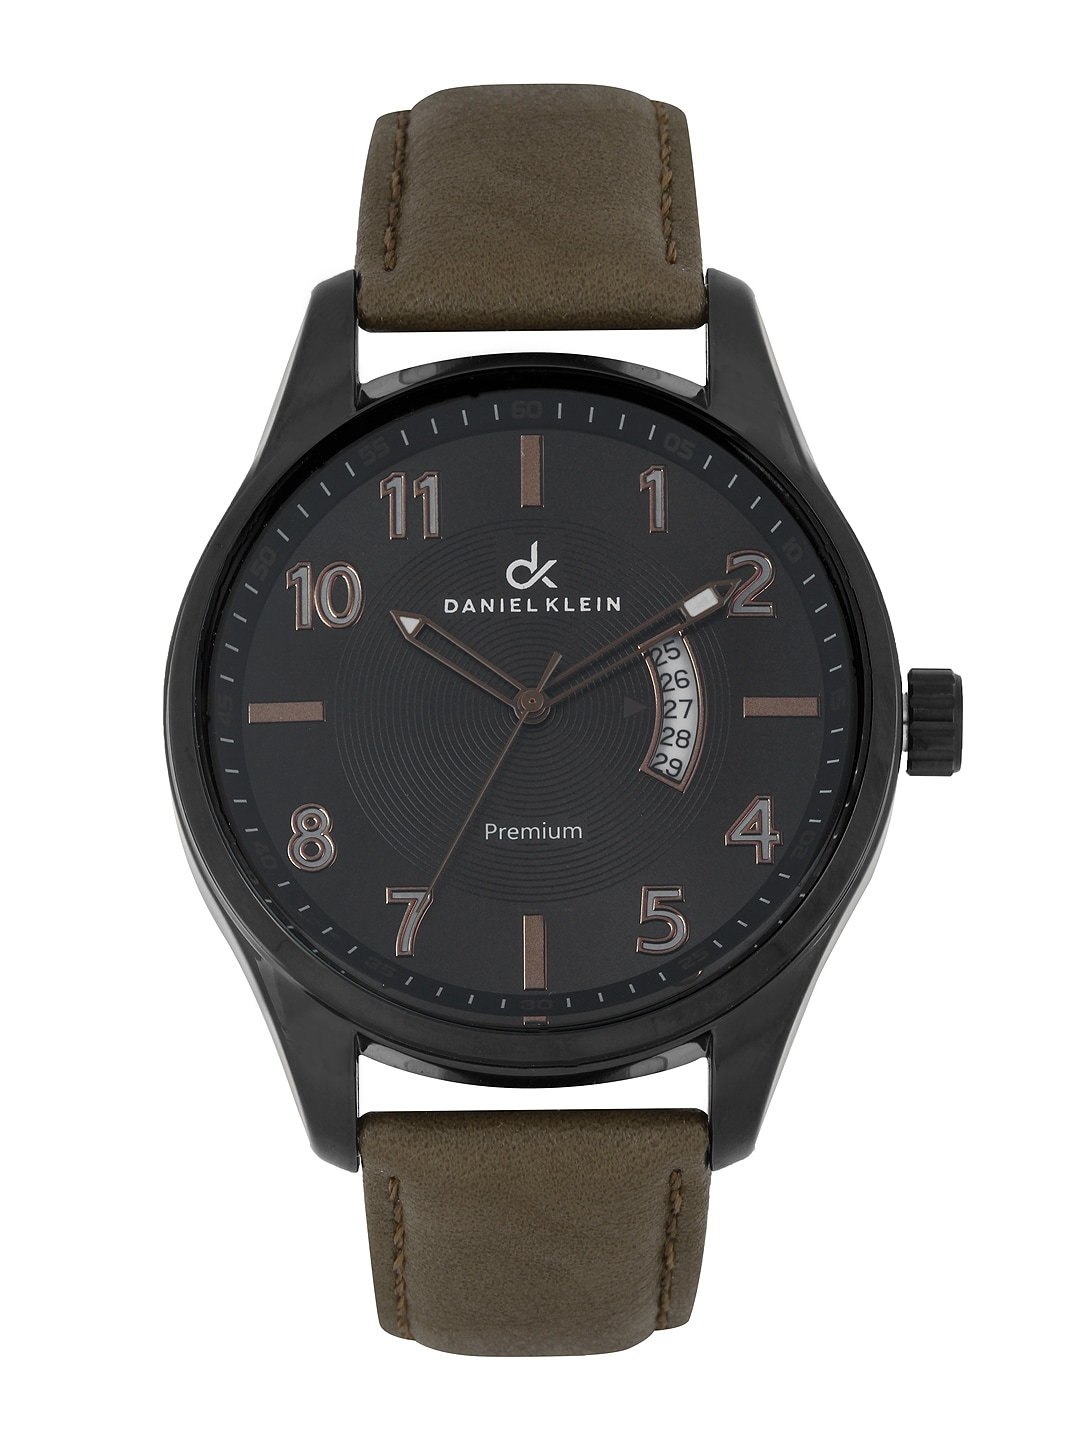 Good Watch Brands For Men >> Buy Daniel Klein Men Black Dial Watch DK10187 8 - 361 ...